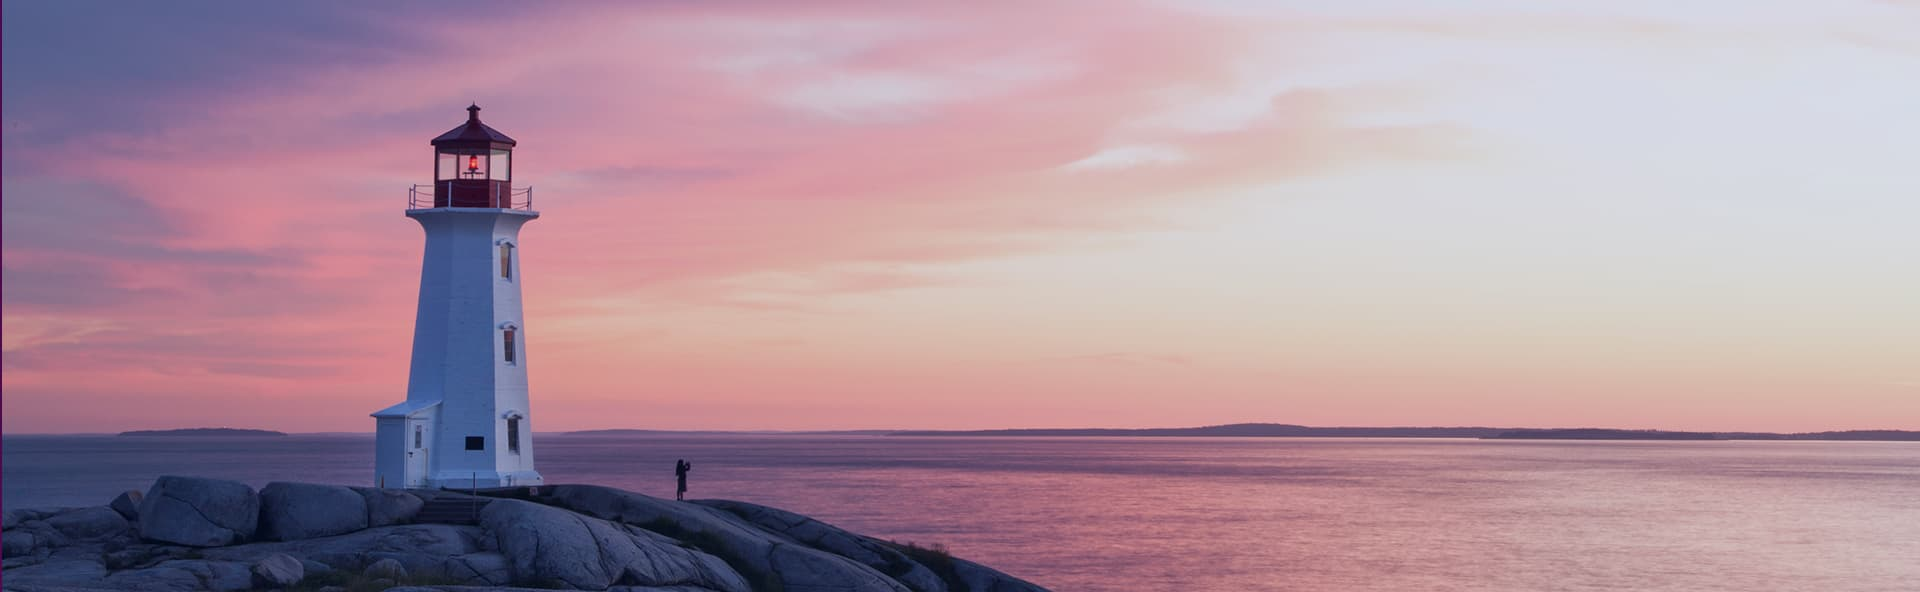 person on rock in distance with sunset